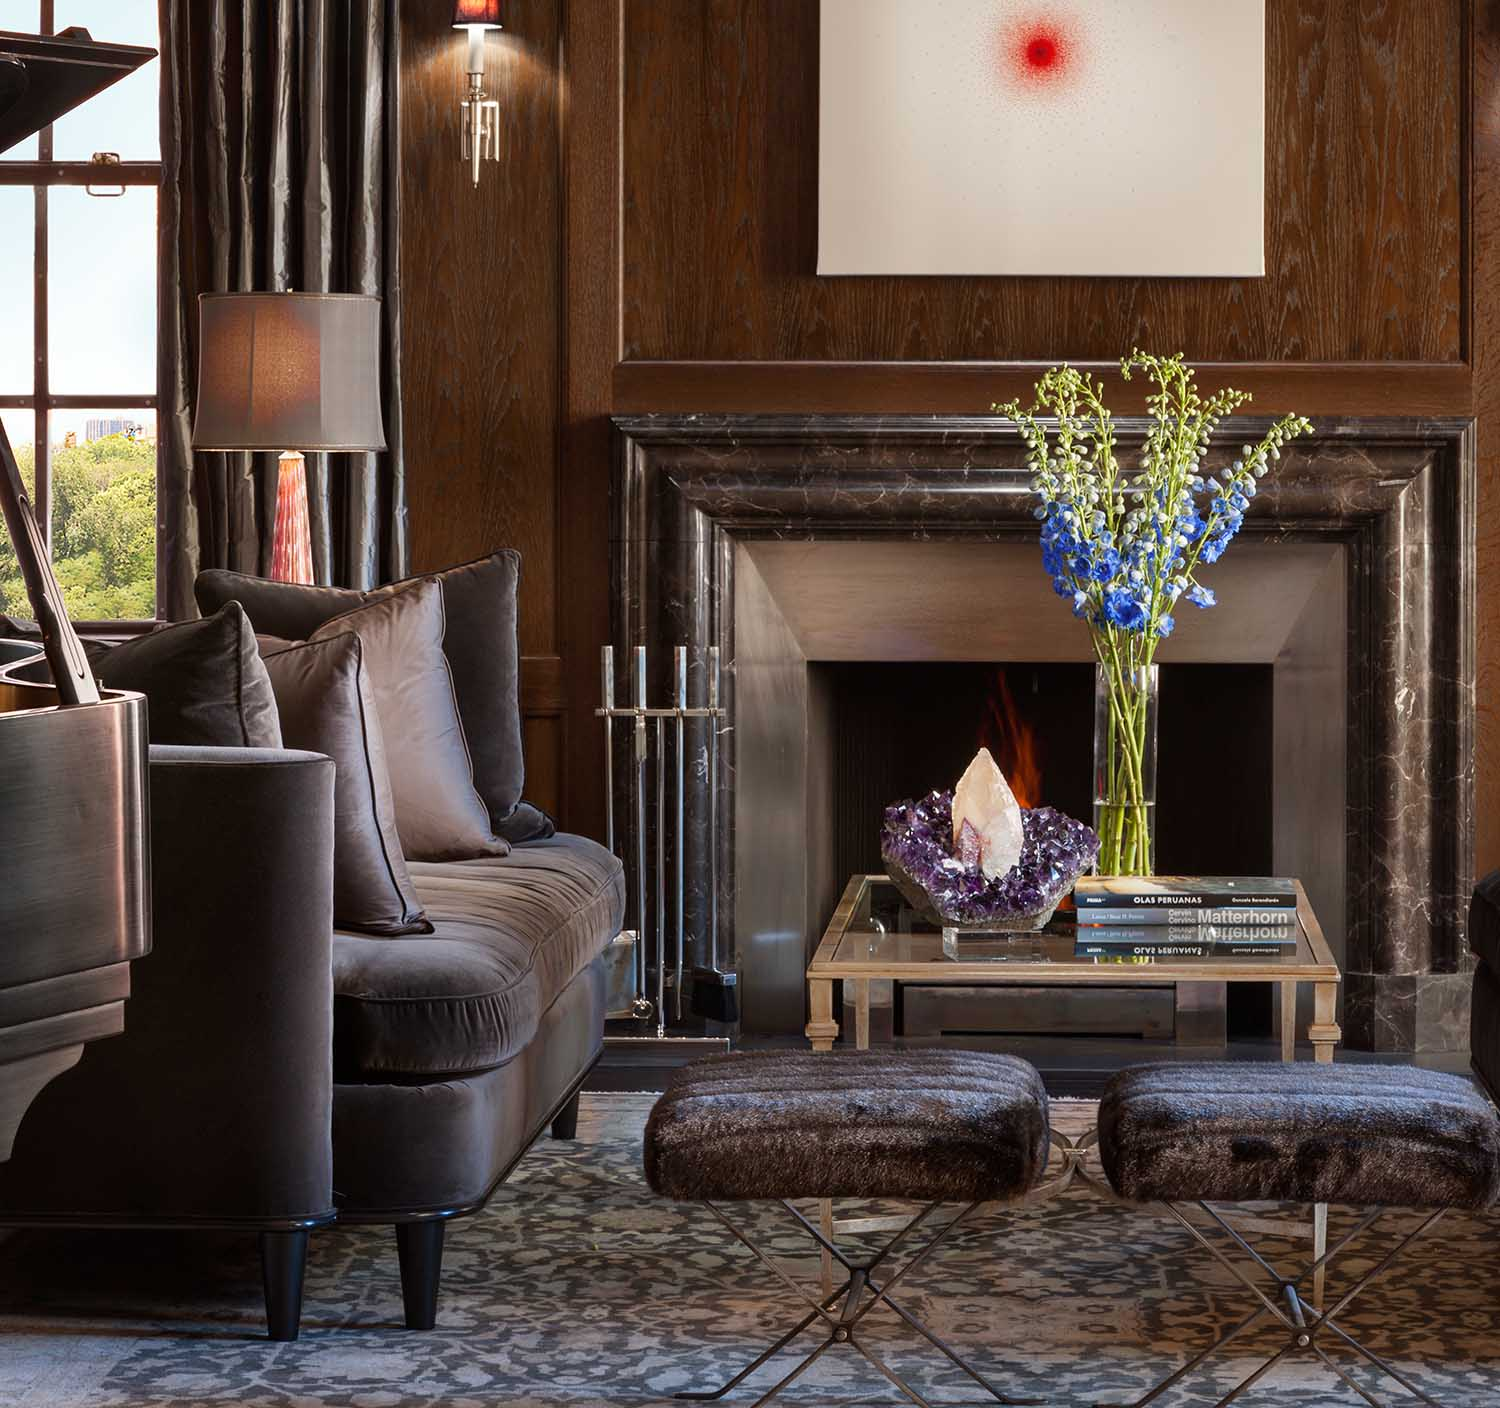 Central Park, Lenox Hill, Manhattan, Living Family room transitional precious mineral fireplace contemporary art piano